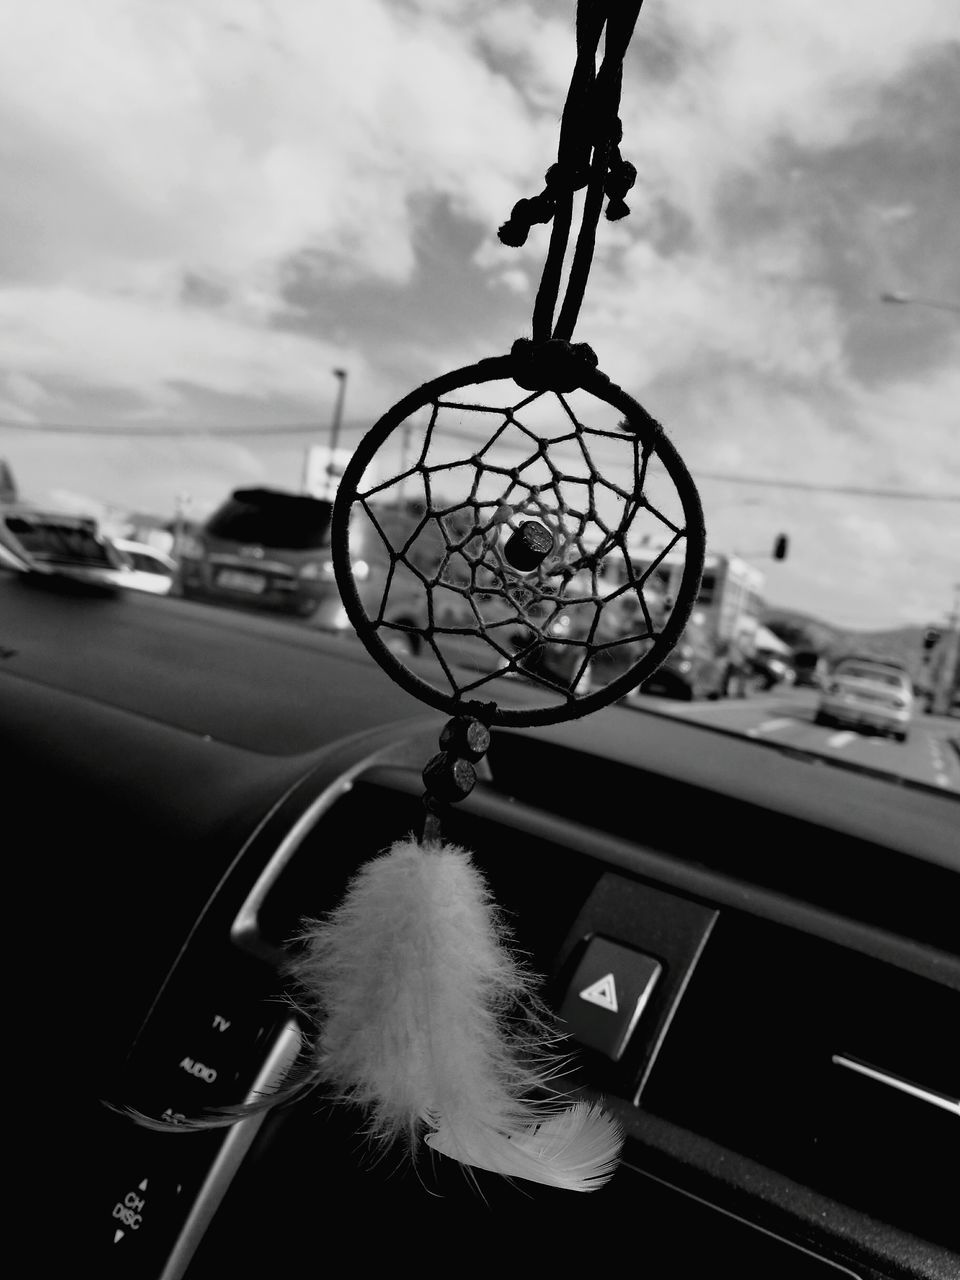 dreamcatcher, hanging, car, sky, transportation, car interior, cloud - sky, mode of transport, land vehicle, no people, focus on foreground, close-up, day, outdoors, hope